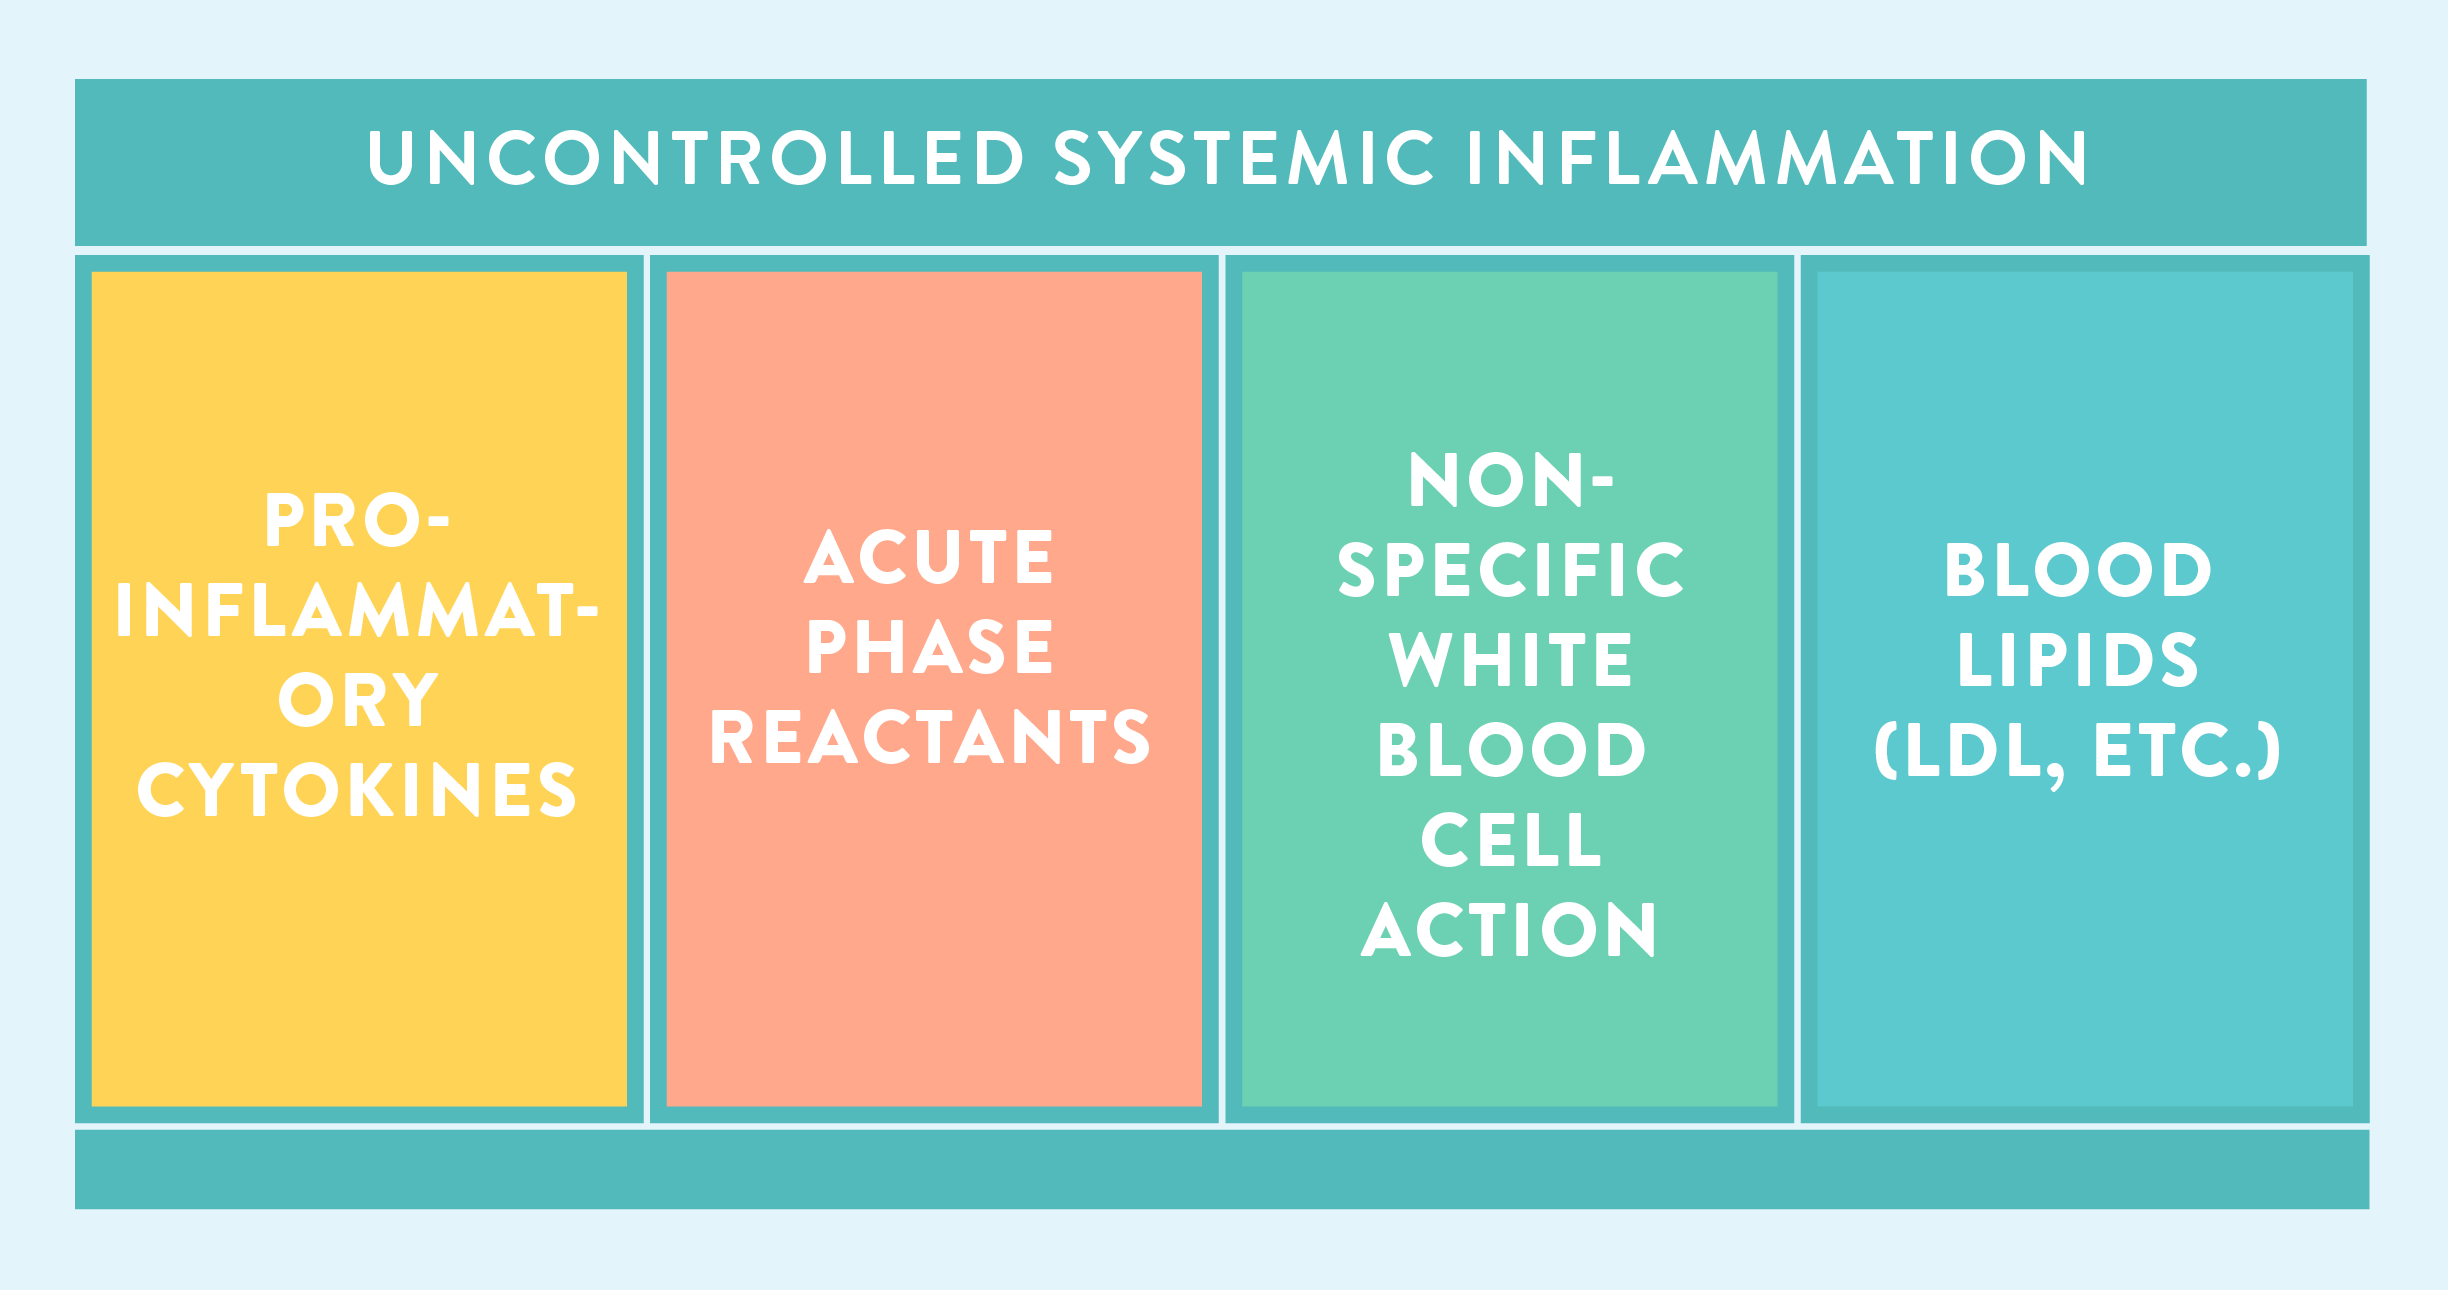 uncontrolled systemic inflammation